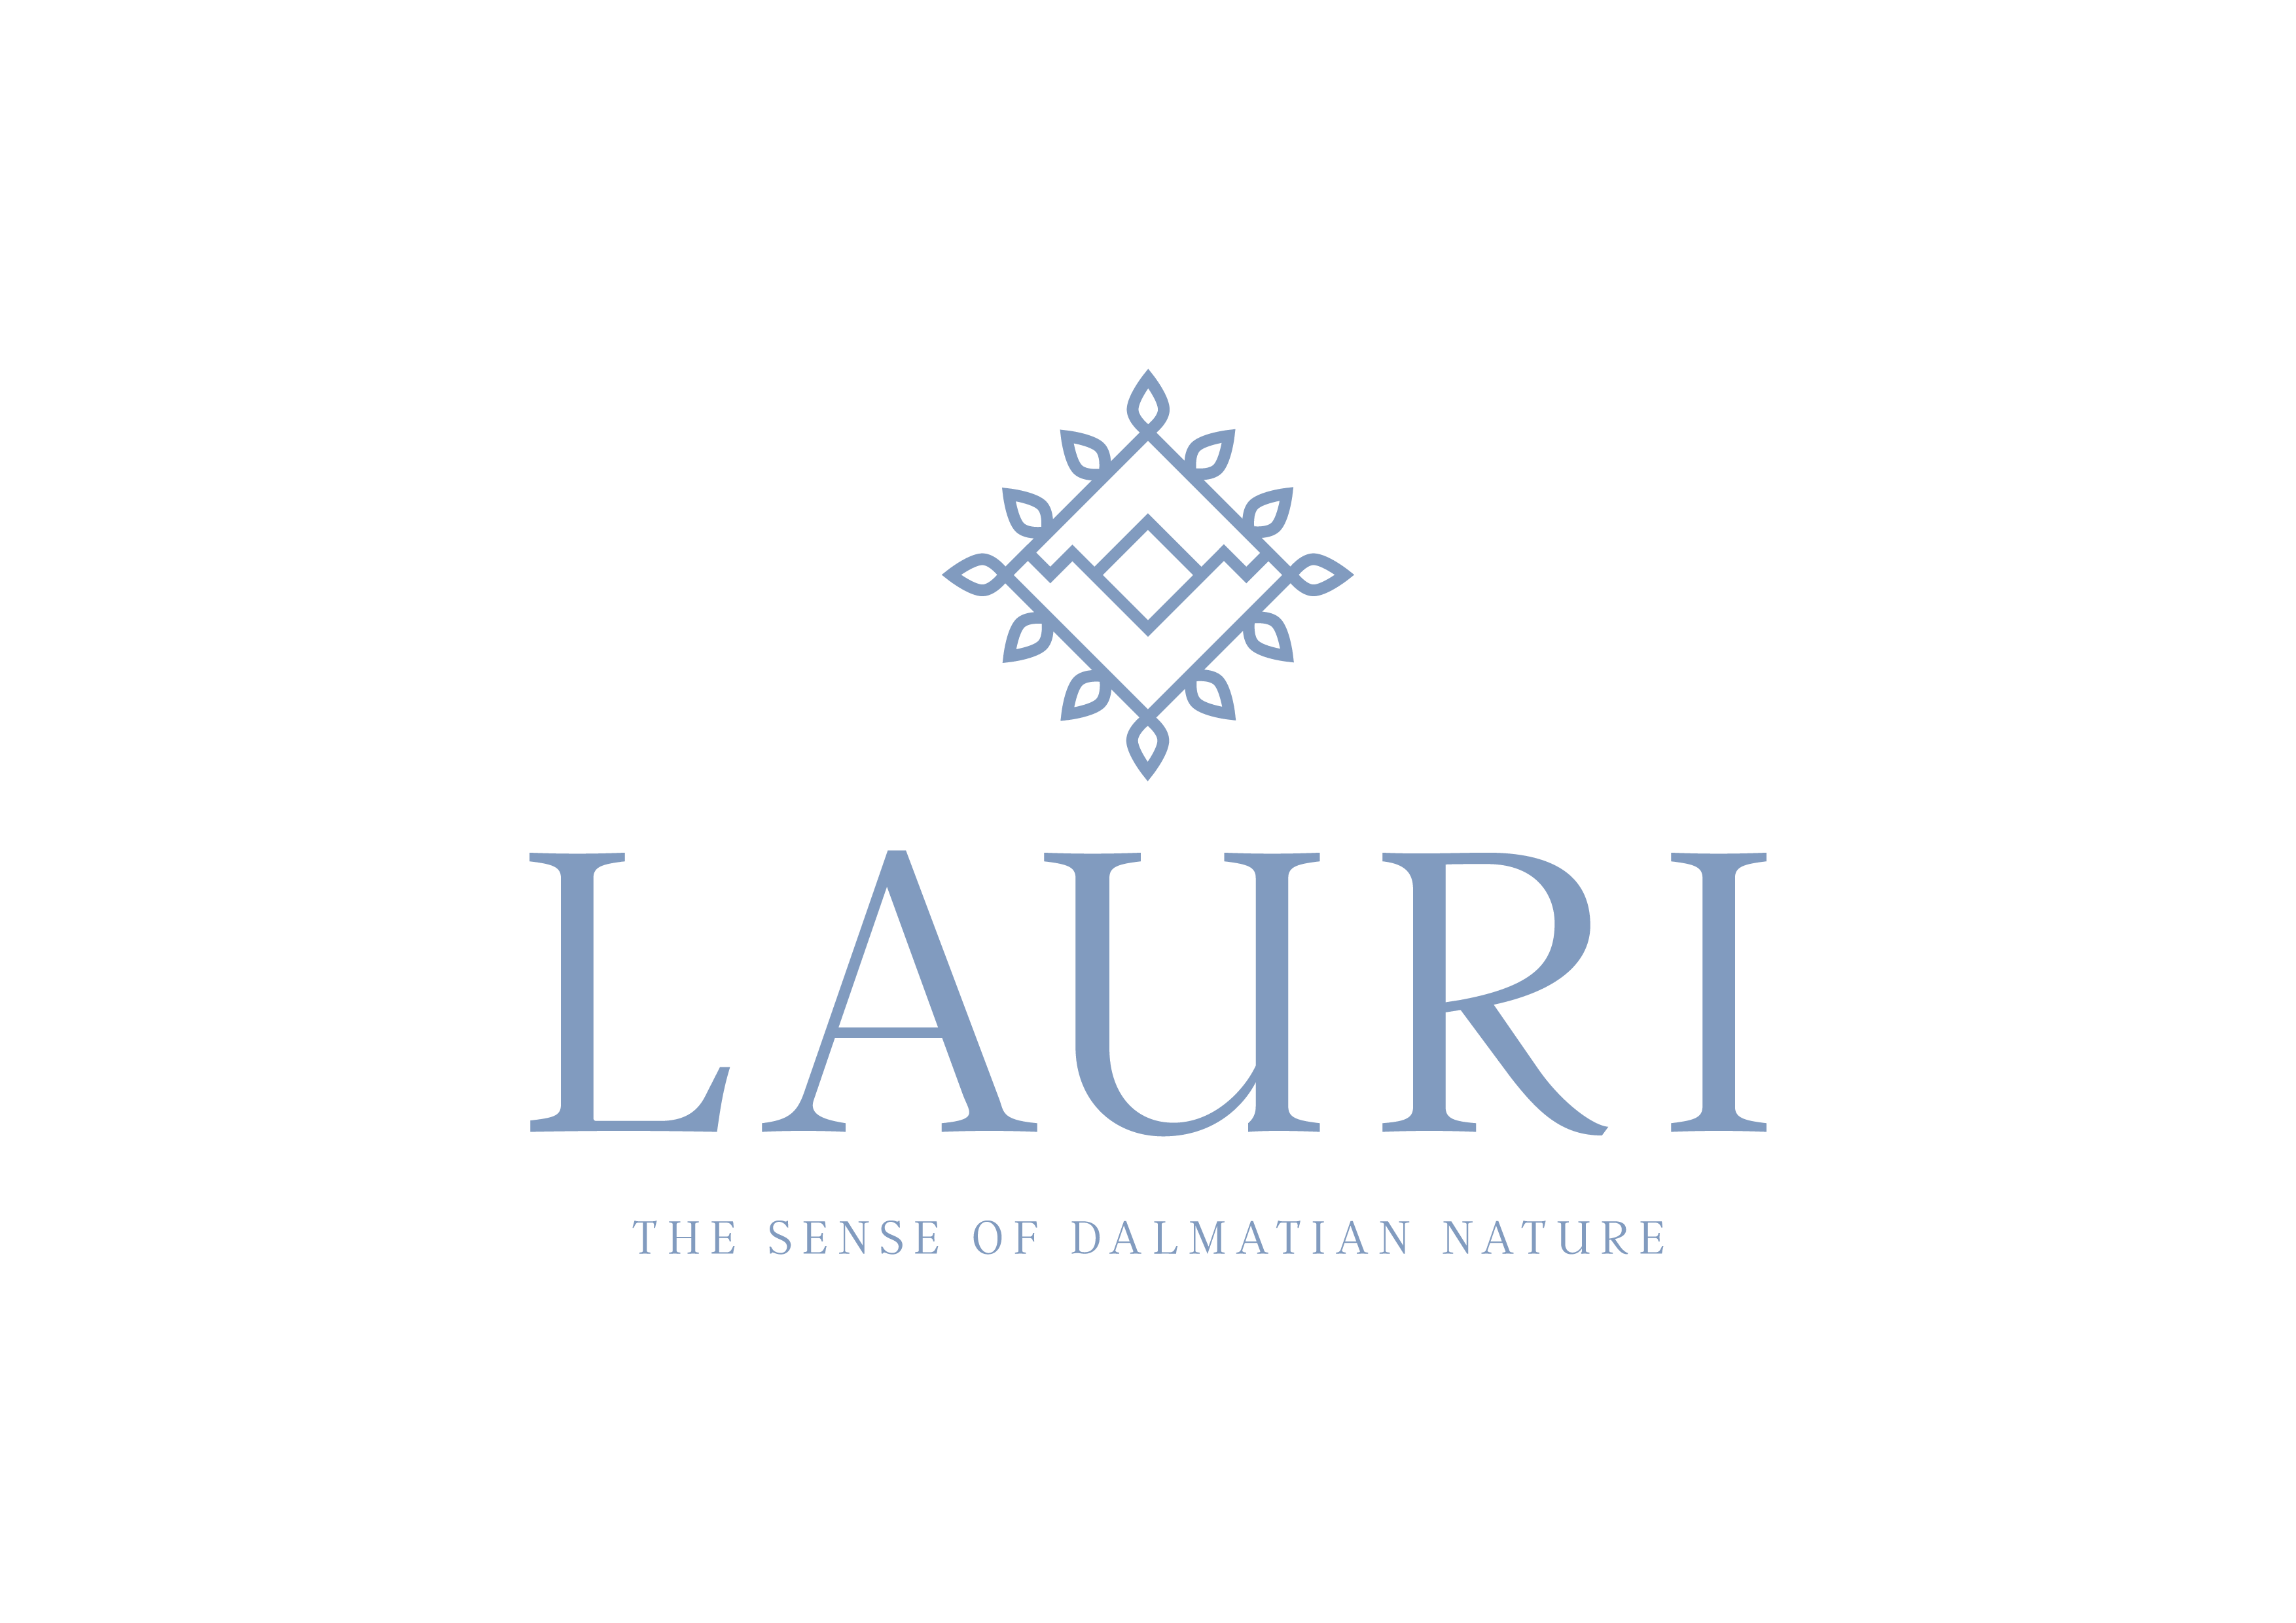 Lauri -  Croatian startup company needs awesome, clean and fresh, logo for its 100% natural products!! More projects!